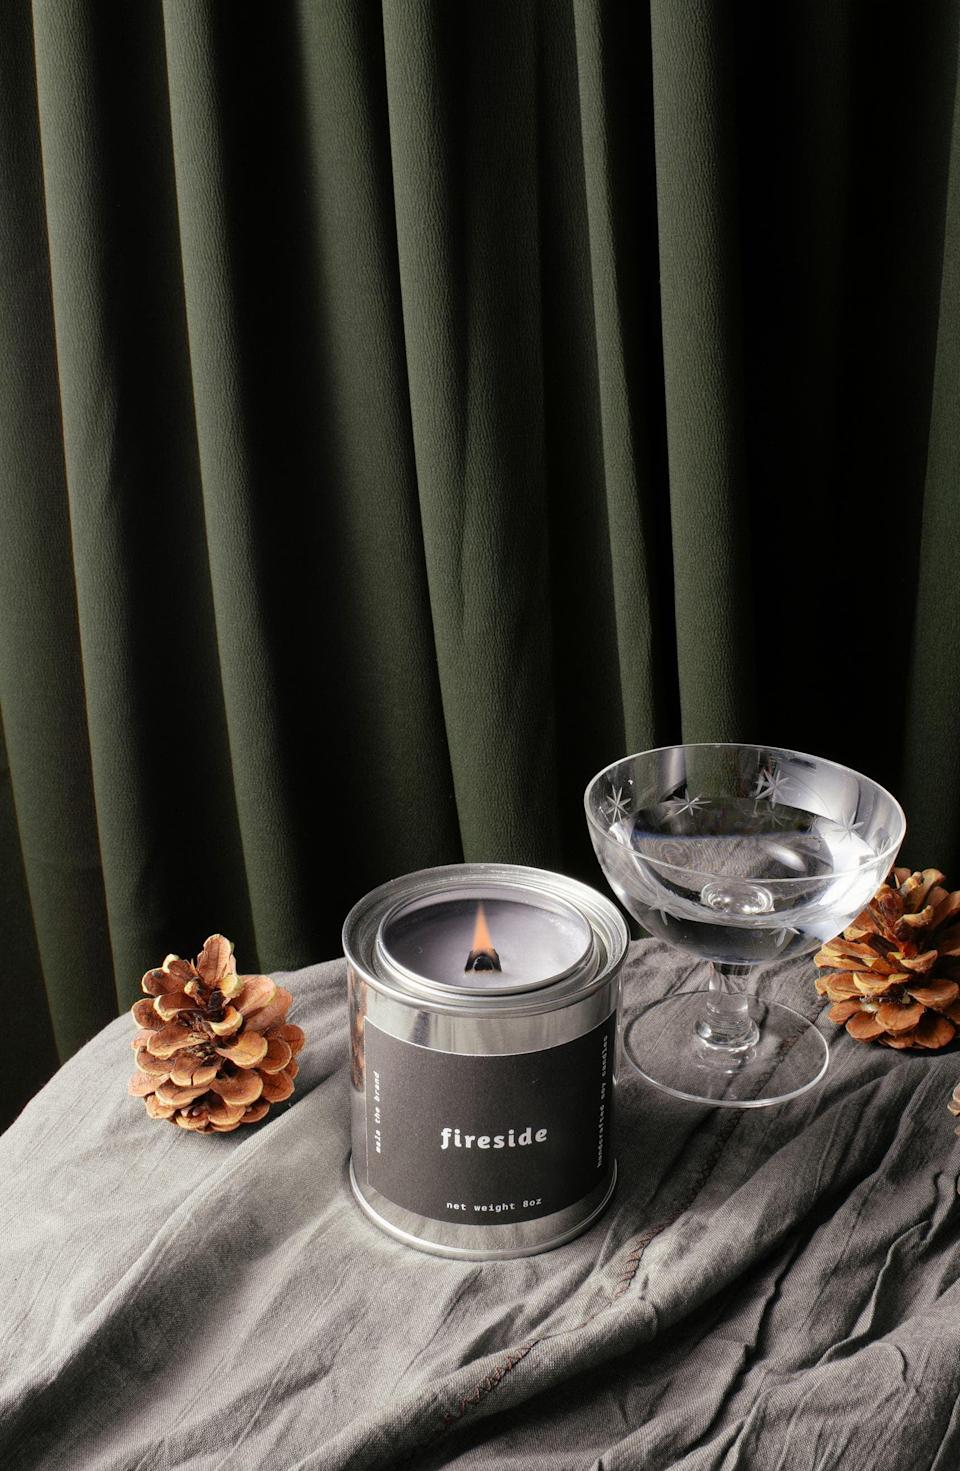 <p>The <span>Mala the Brand Candle</span> ($30) will set the mood with the ultimate sensorial experience. It's a woodwick candle that crackles as it burns, so it sounds like a relaxing fireplace. It comes in a variety of fresh and cozy scents including fireside and morning dew, you can shop them <span>here</span>. If you're shopping for a college student who loves ASMR, this candle is a must!</p>